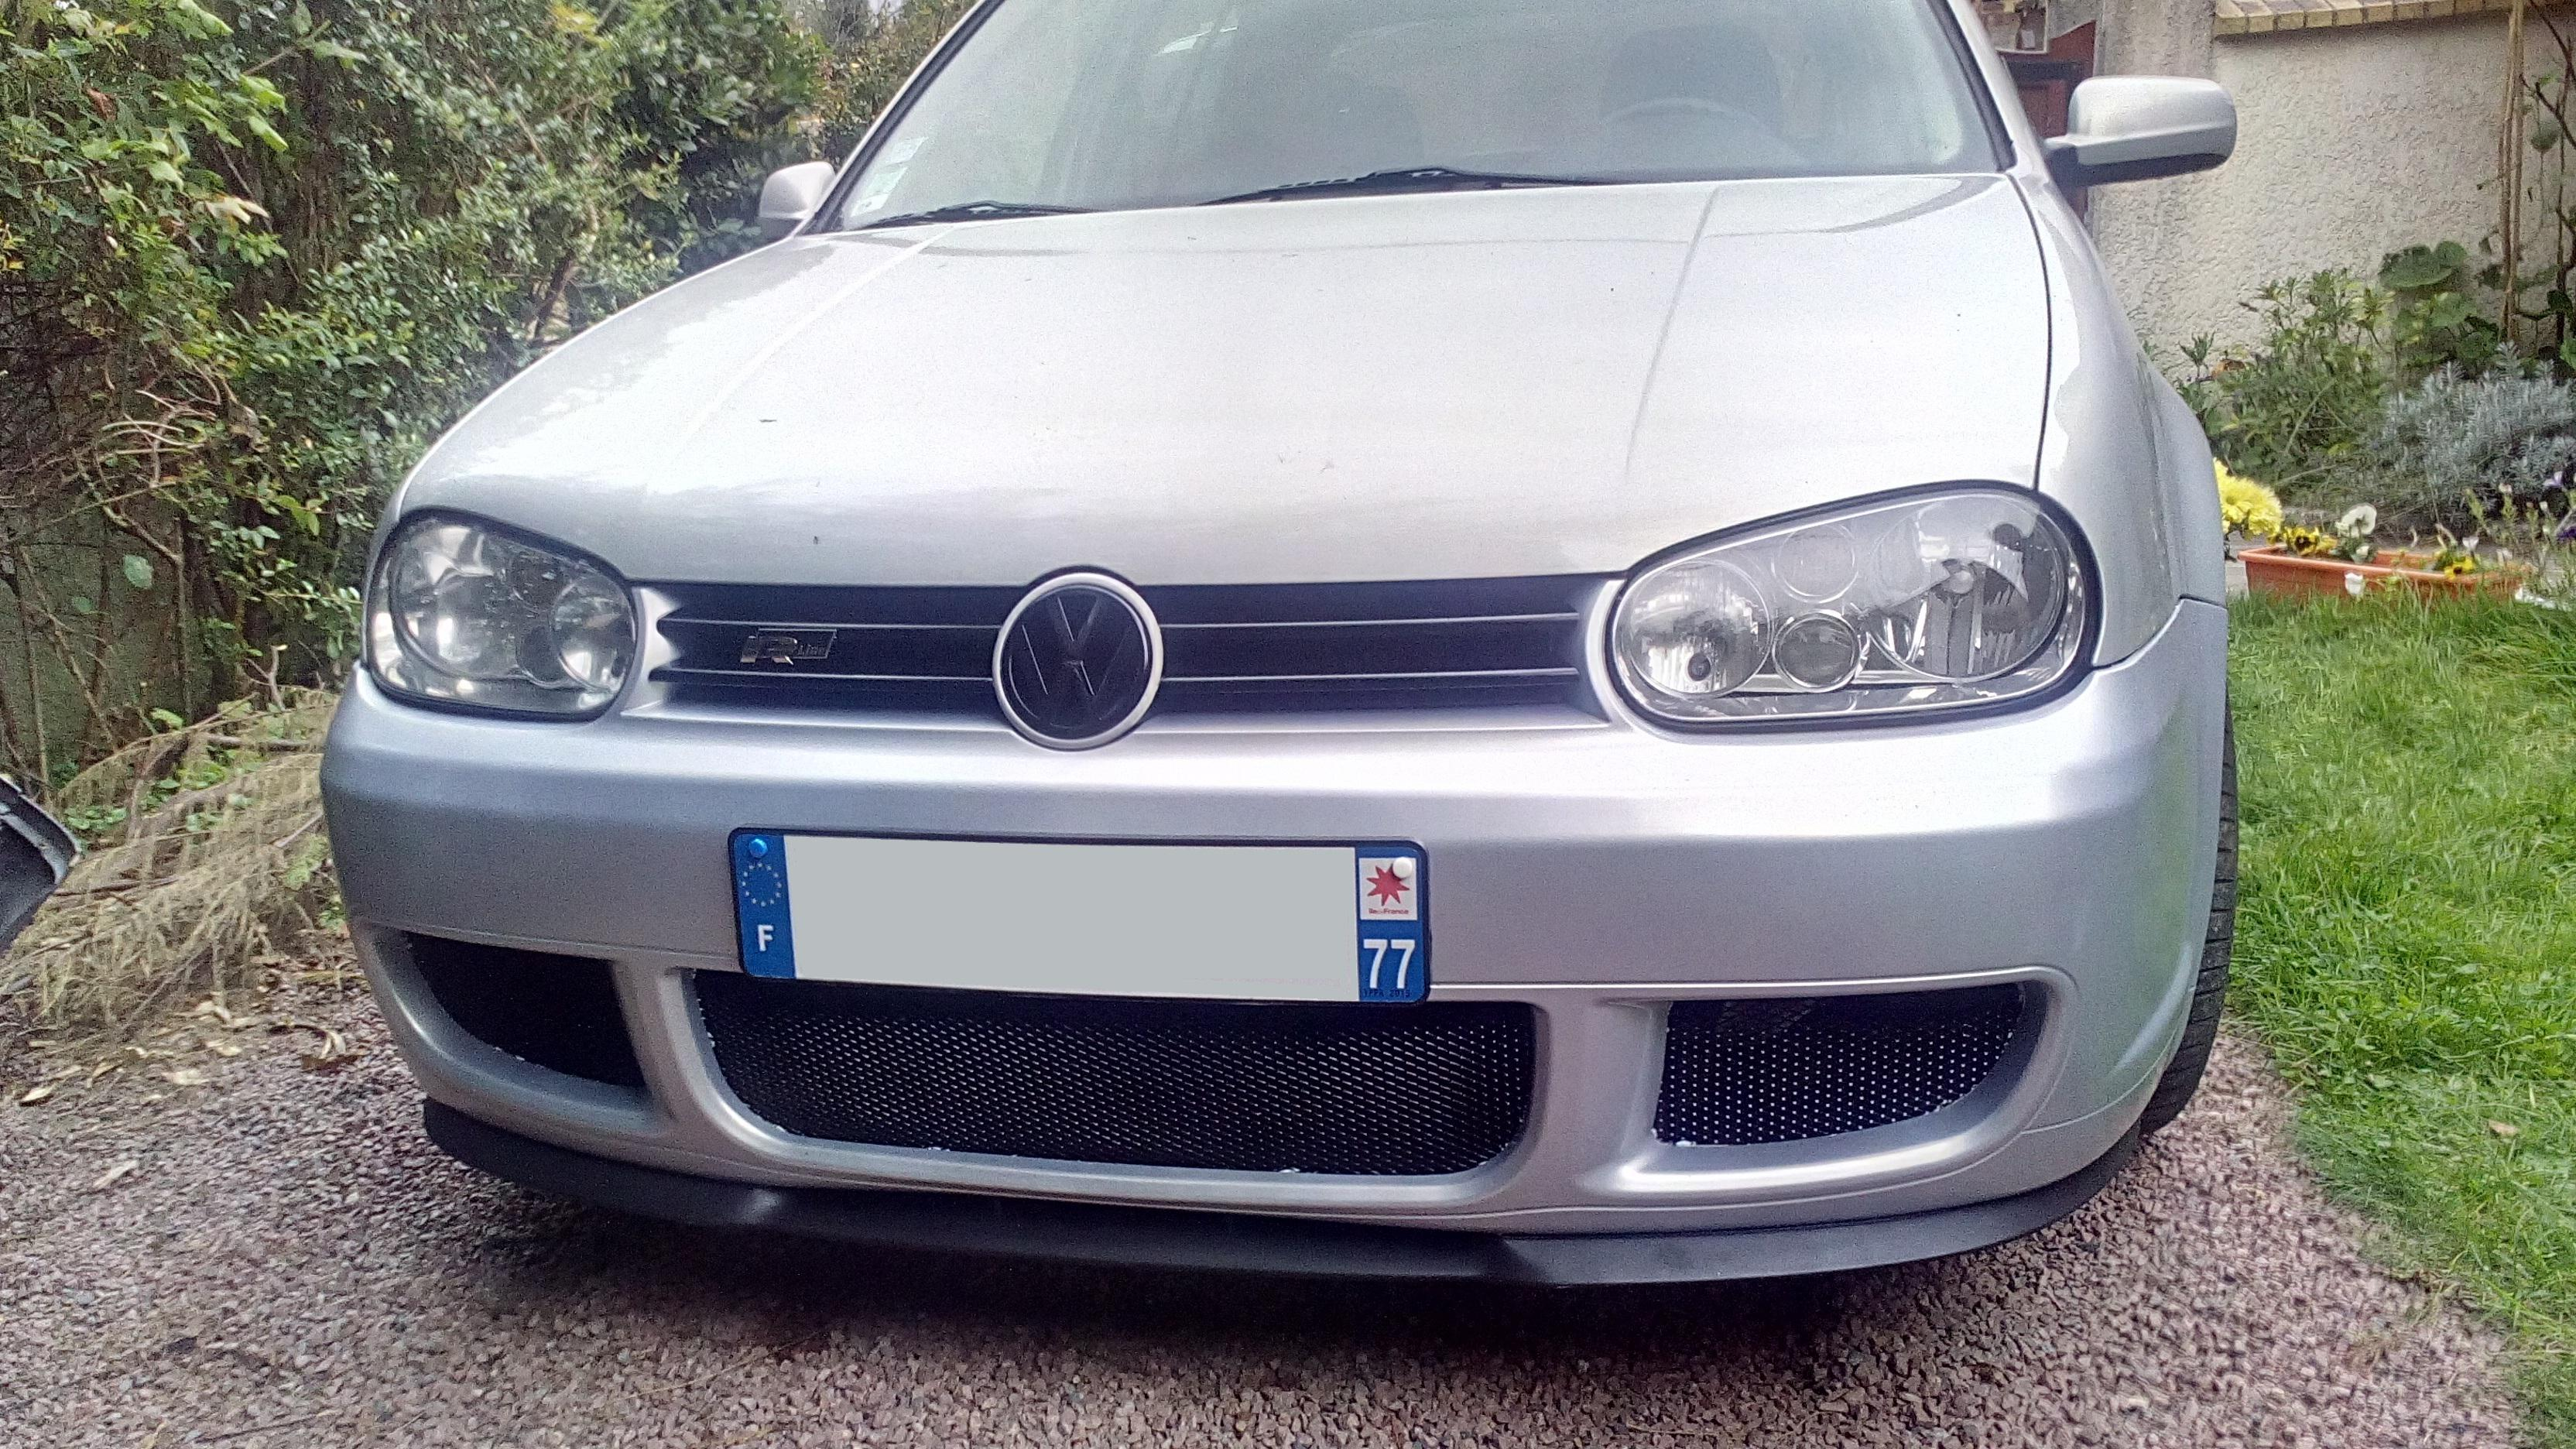 vw golf iv tdi 90 confort 1999 garage des golf iv tdi 90 page 2 forum volkswagen golf iv. Black Bedroom Furniture Sets. Home Design Ideas